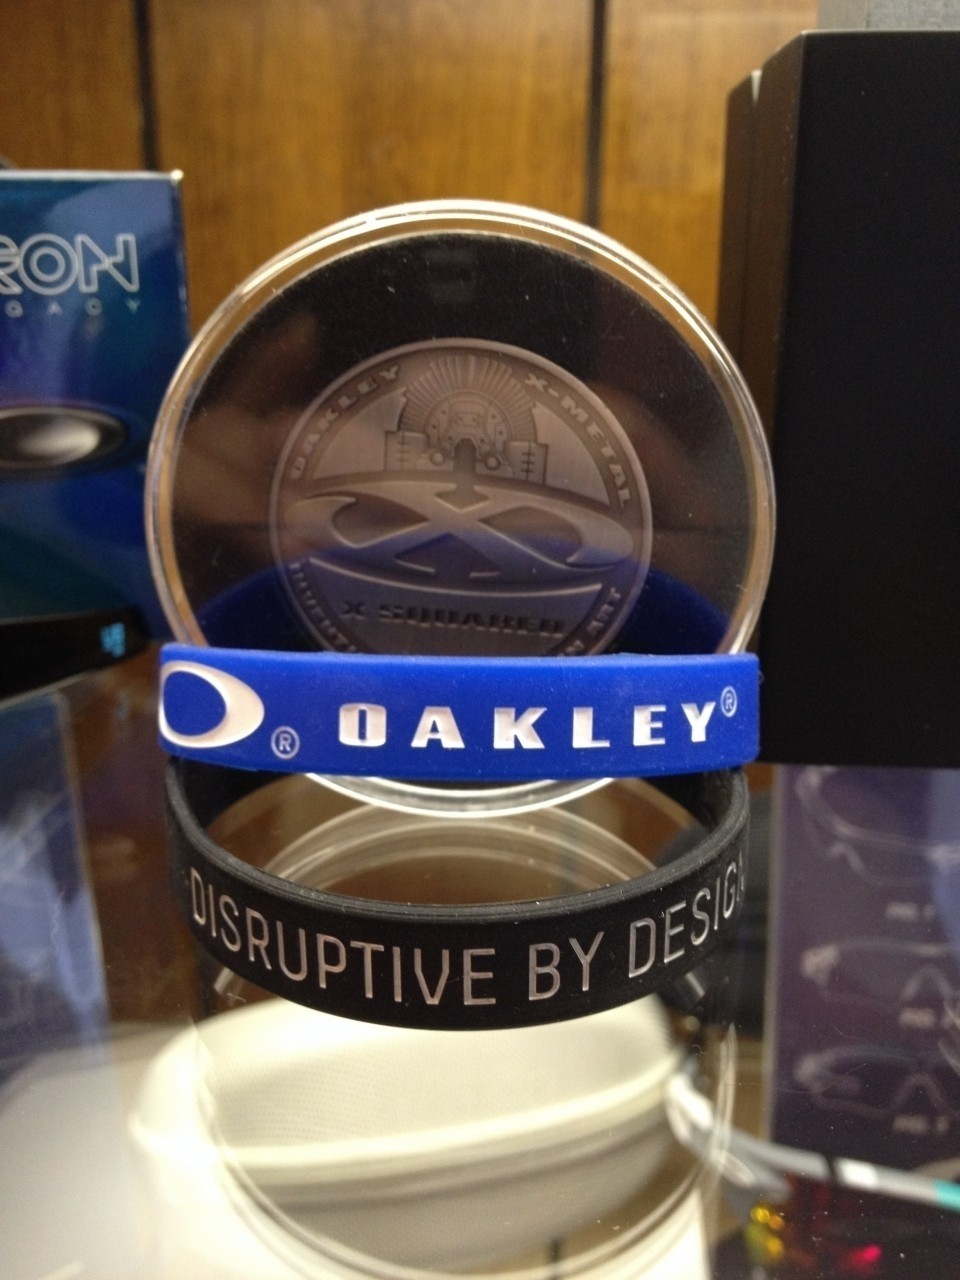 X Squared Coin<br /> Oakley band from Lenscrafters<br /> Disruptive By Design band